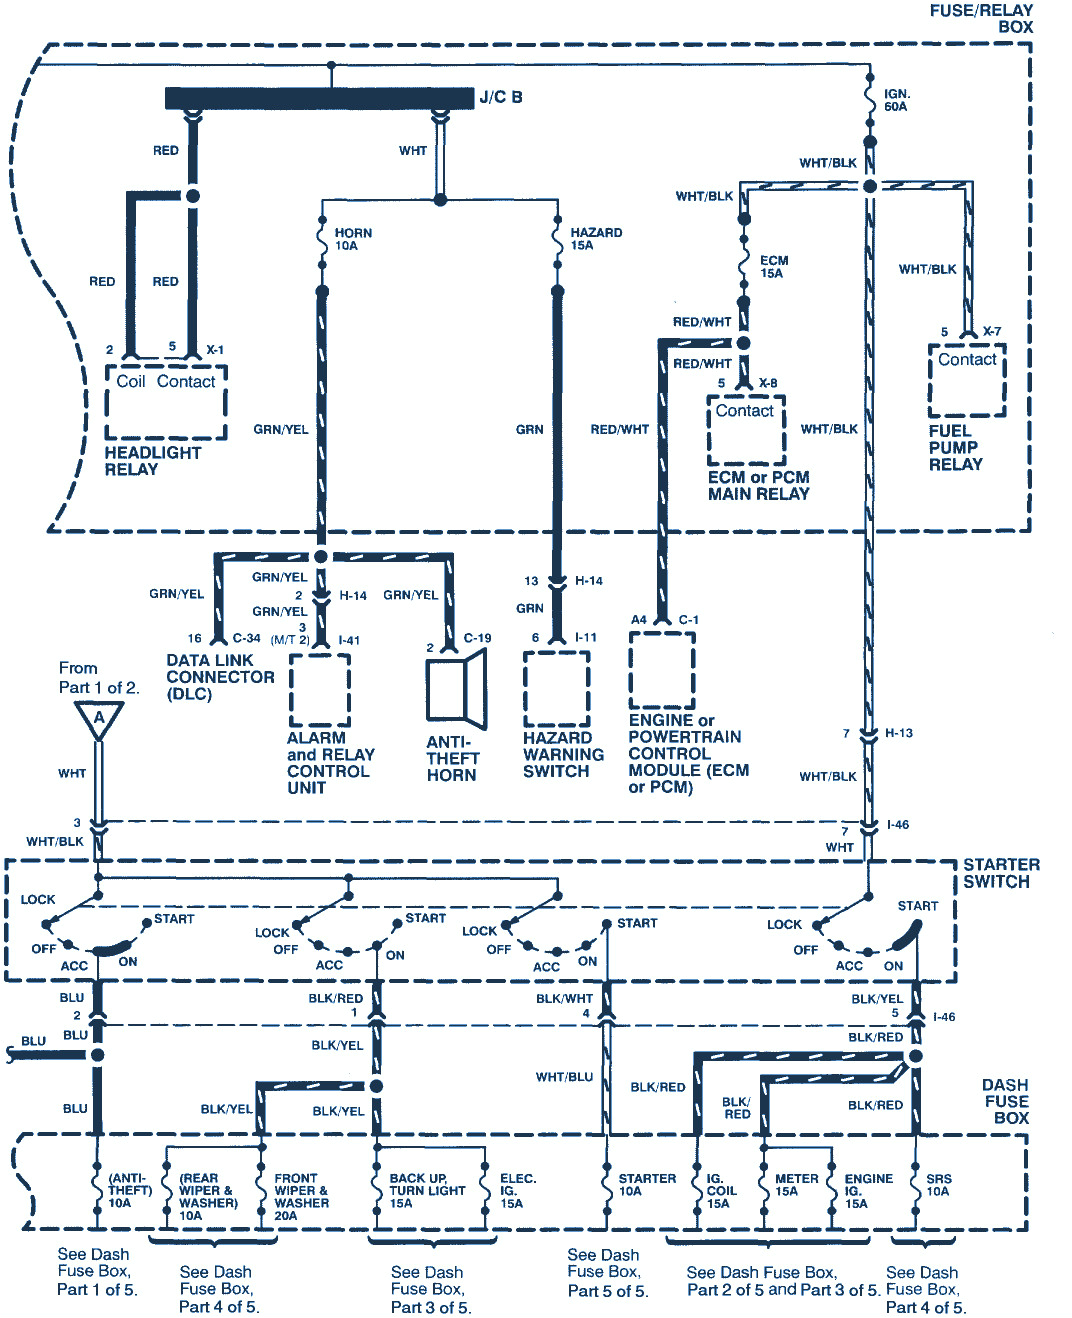 wiring diagram for a 2002 toyota camry get free image about wiring wiring diagram for toyota camry get free image about wiring free